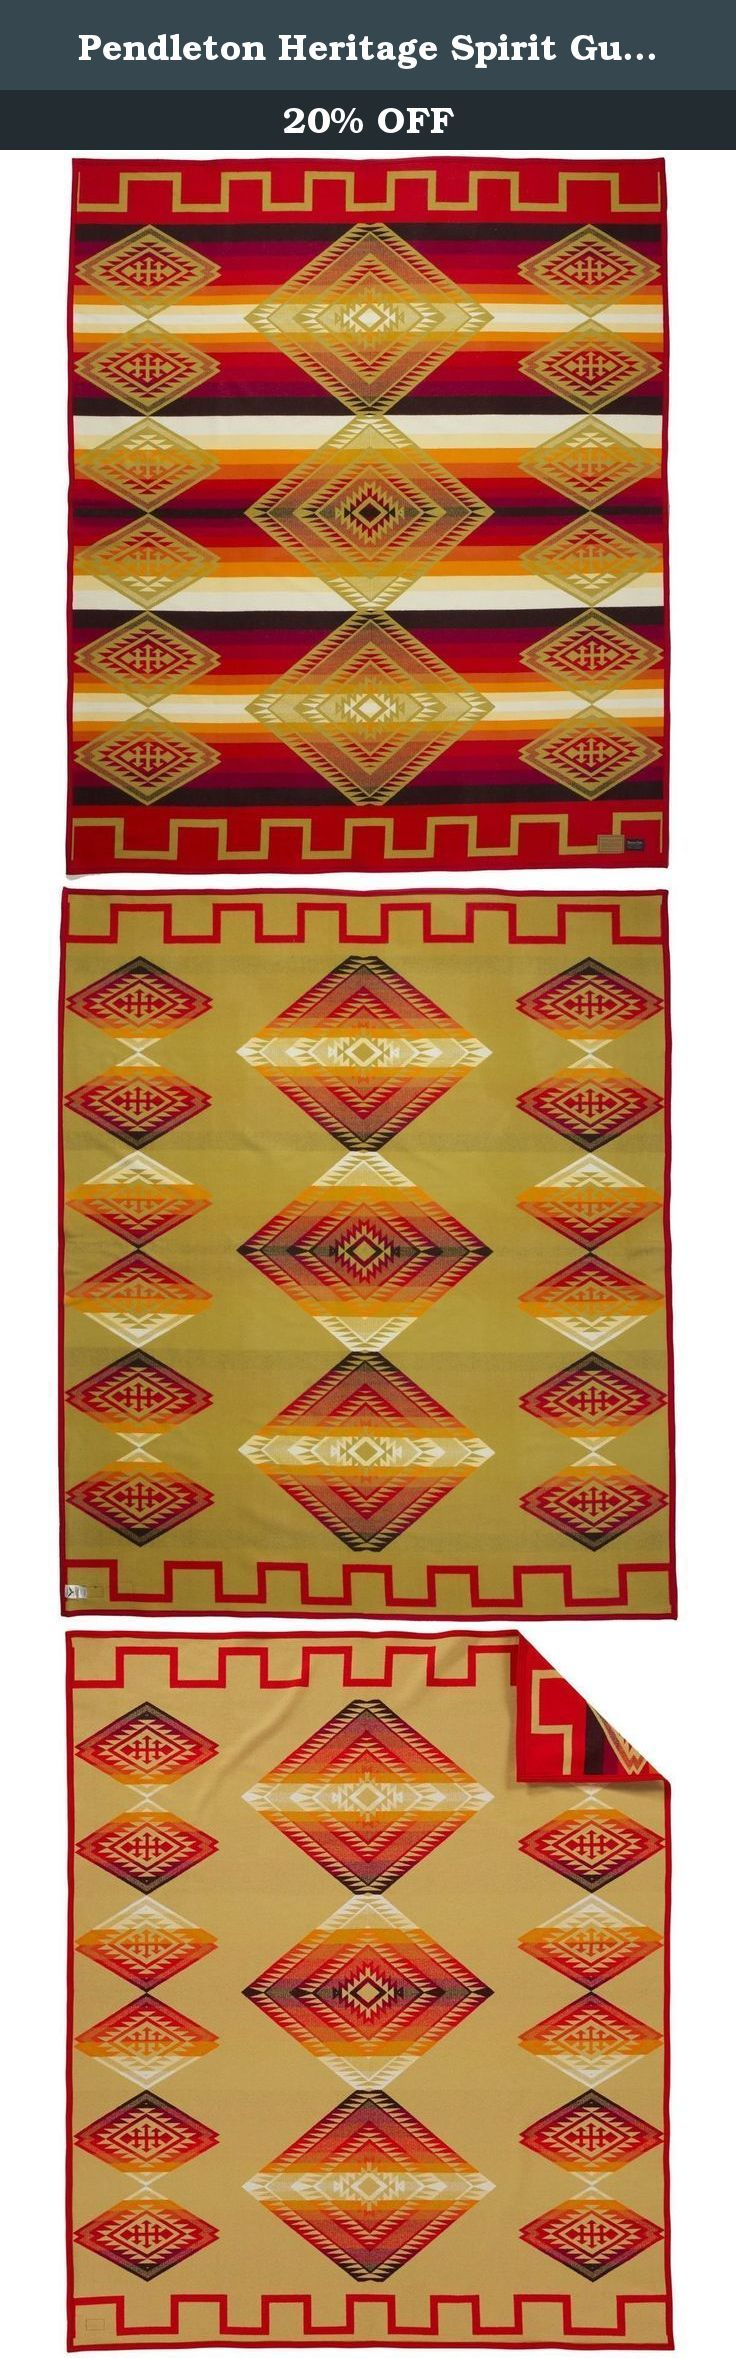 Pendleton Heritage Spirit Guide Wool Throw. Spirit Guide is an archival Pendleton design from the 1920s or 1930s, and is a beautiful example of a Center Point pattern-one that contains a central design element that falls within a band through the center of the blanket. This central diamond may be an abstract representation of the eye of the shaman or medicine man.